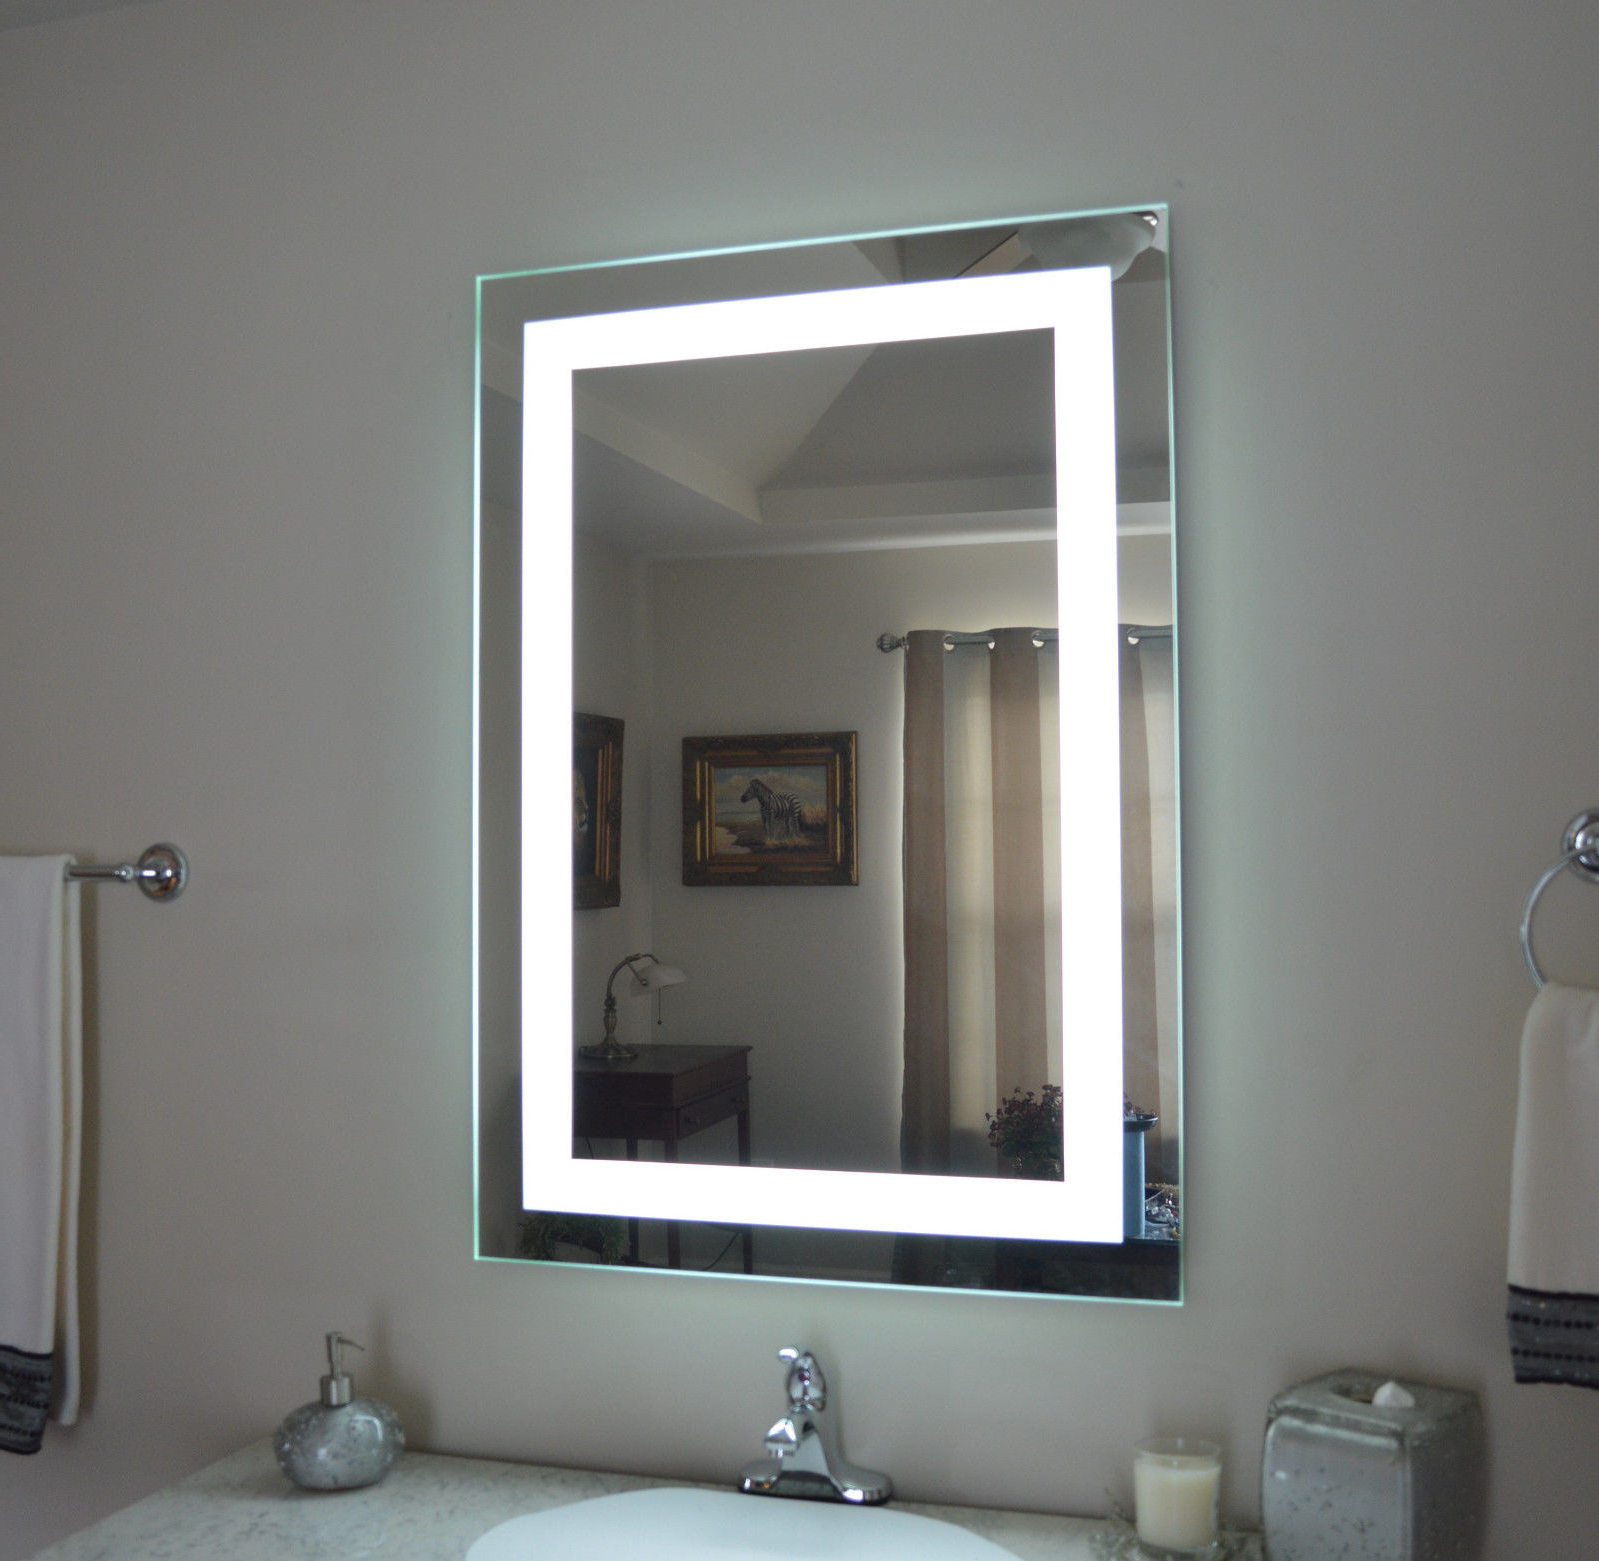 Led Bathroom Wall Mirror Illuminated Lighted Vanity Mirror With Touch Button Ega In Famous Lighted Bathroom Wall Mirrors (View 6 of 20)